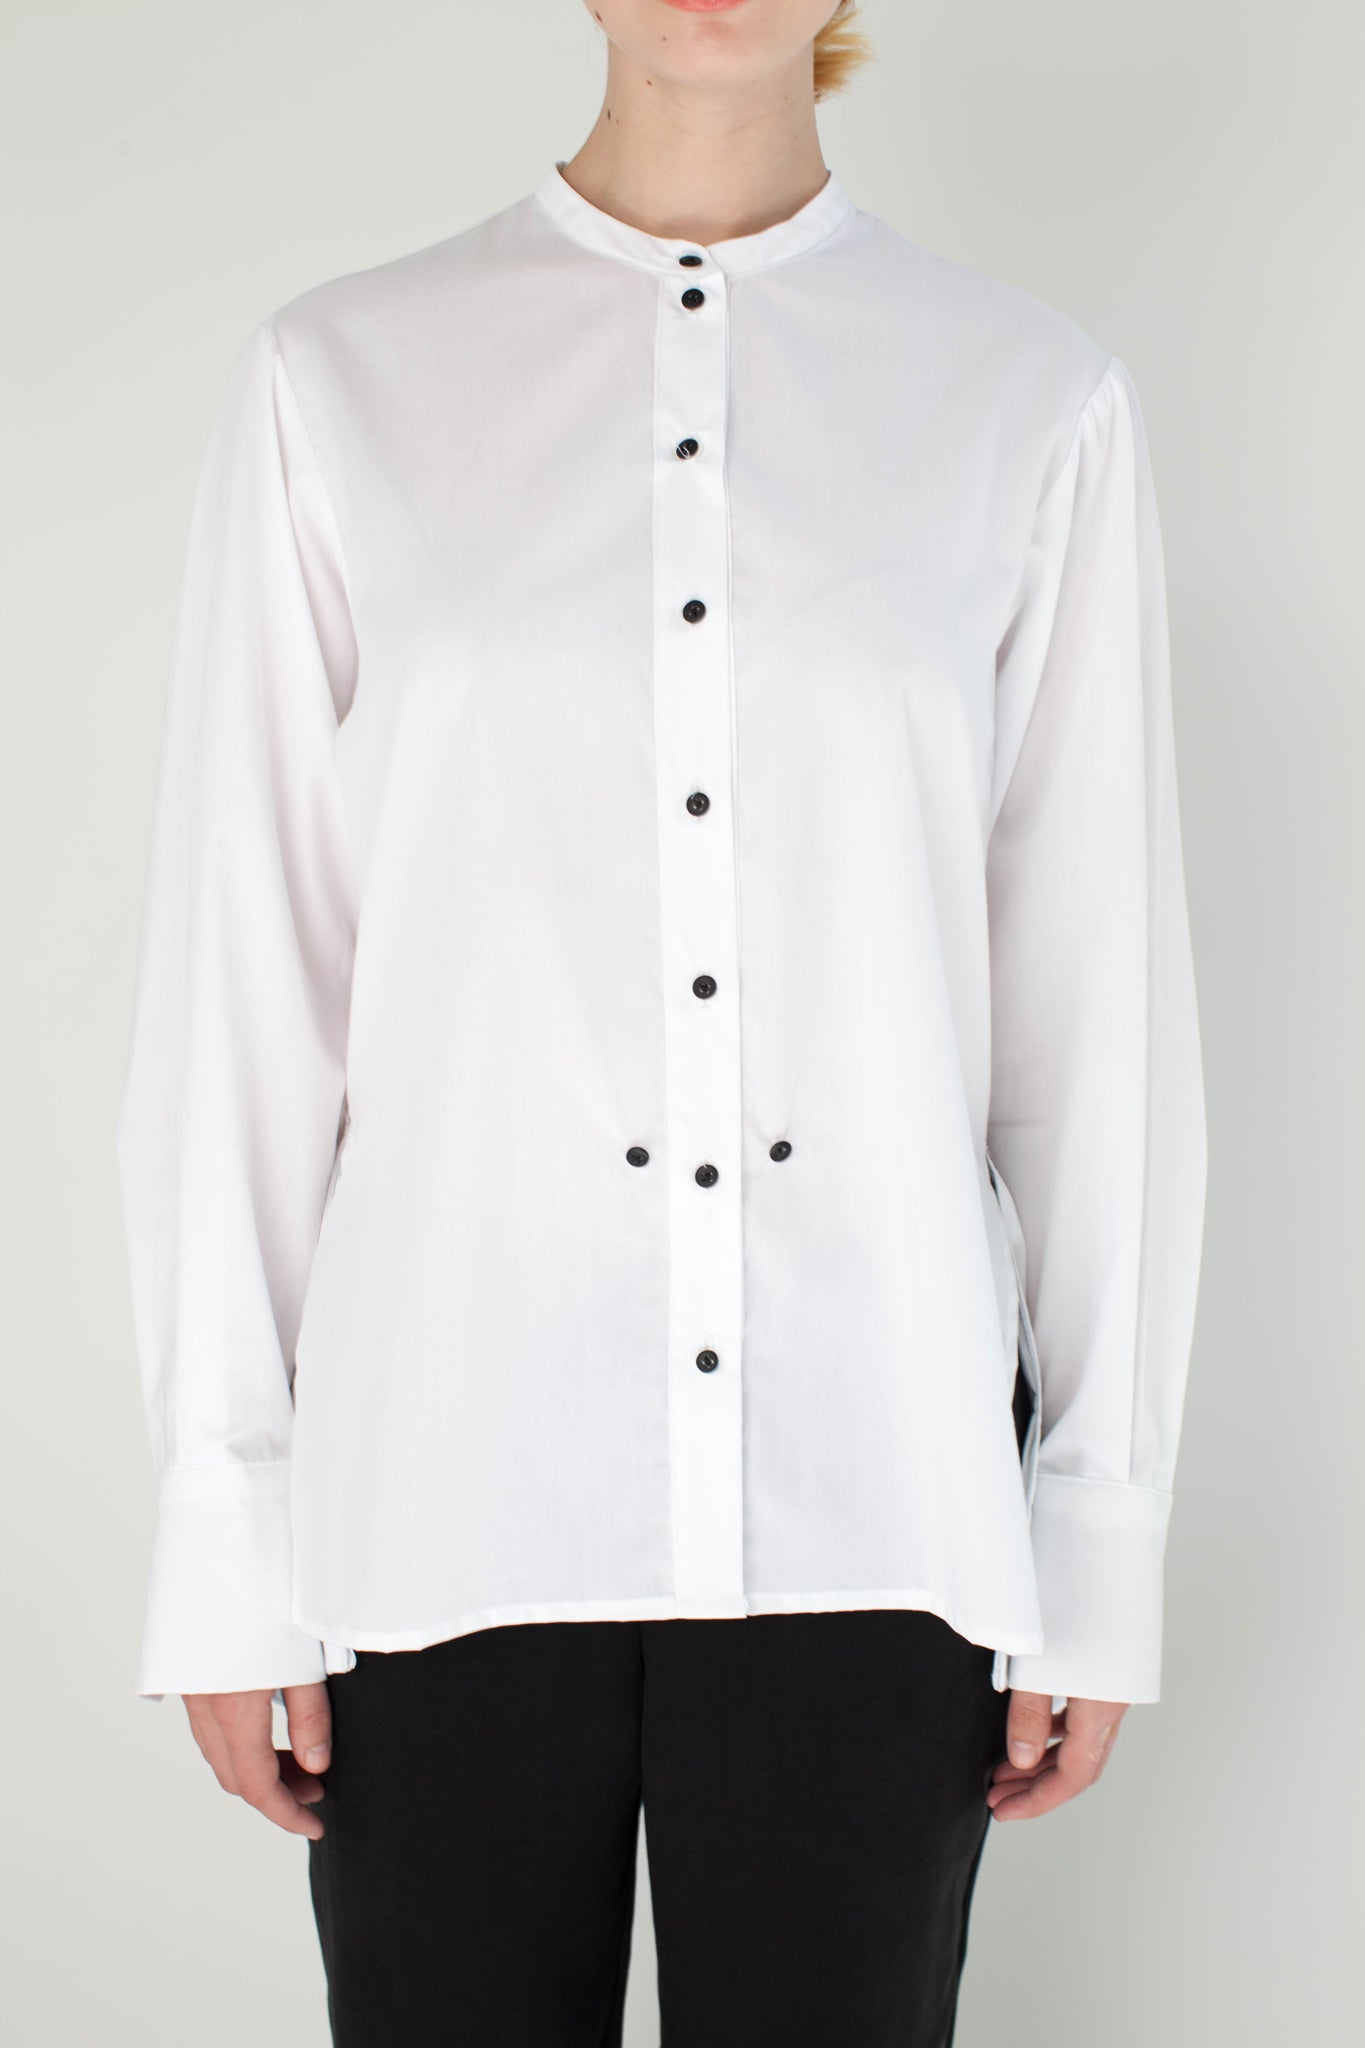 VW Button Up Shirt